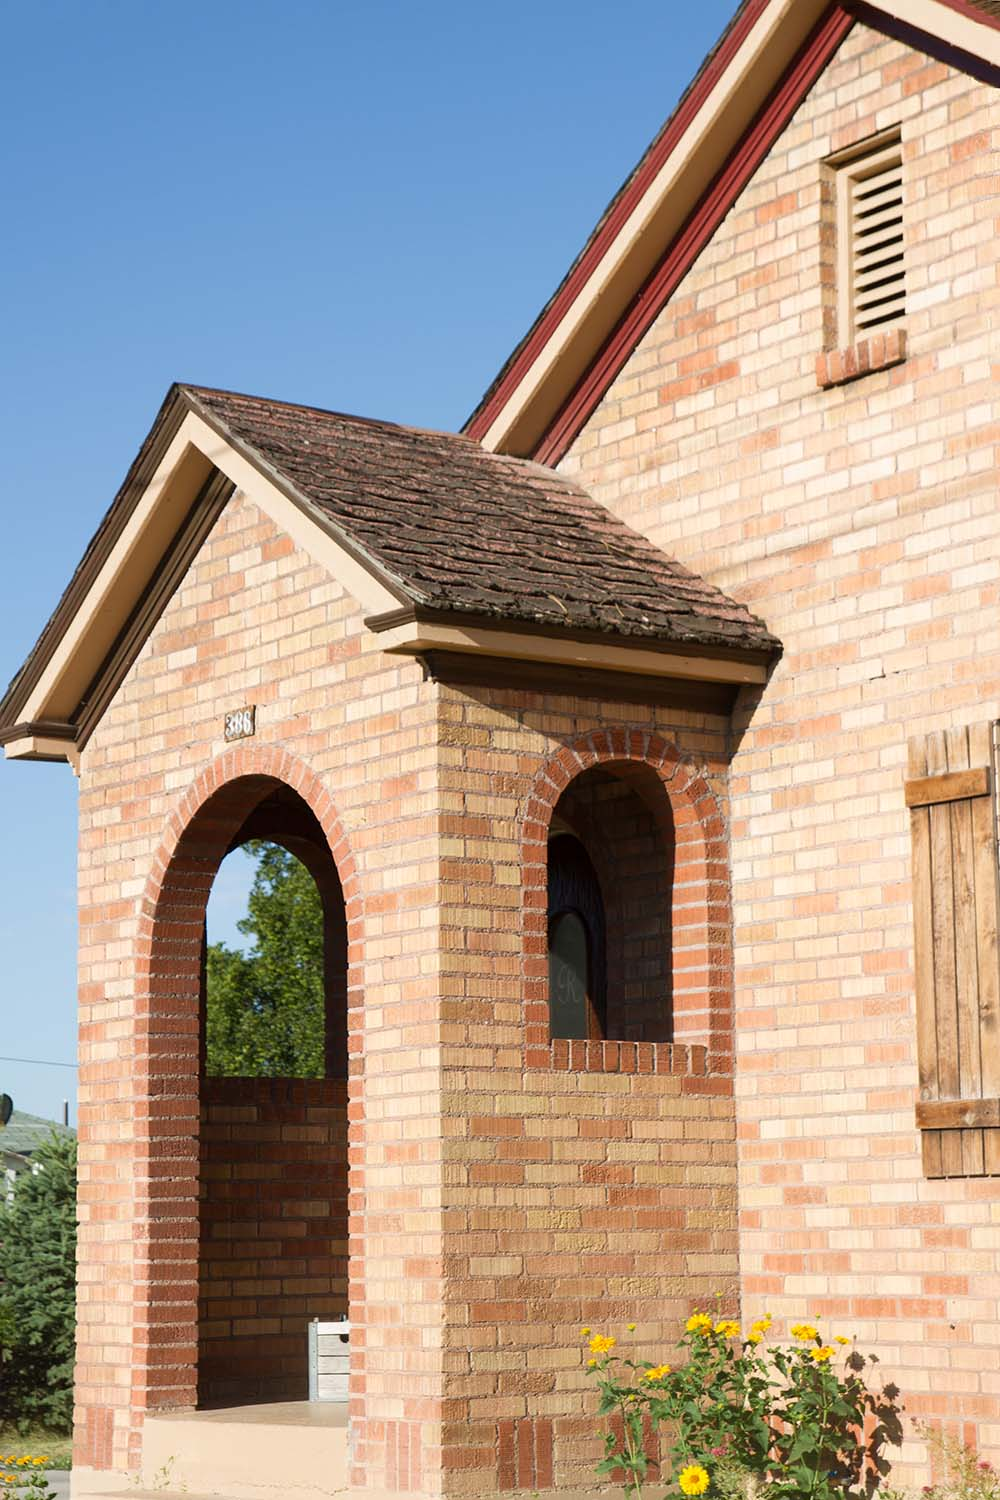 The front of a brick home with an arched entryway.